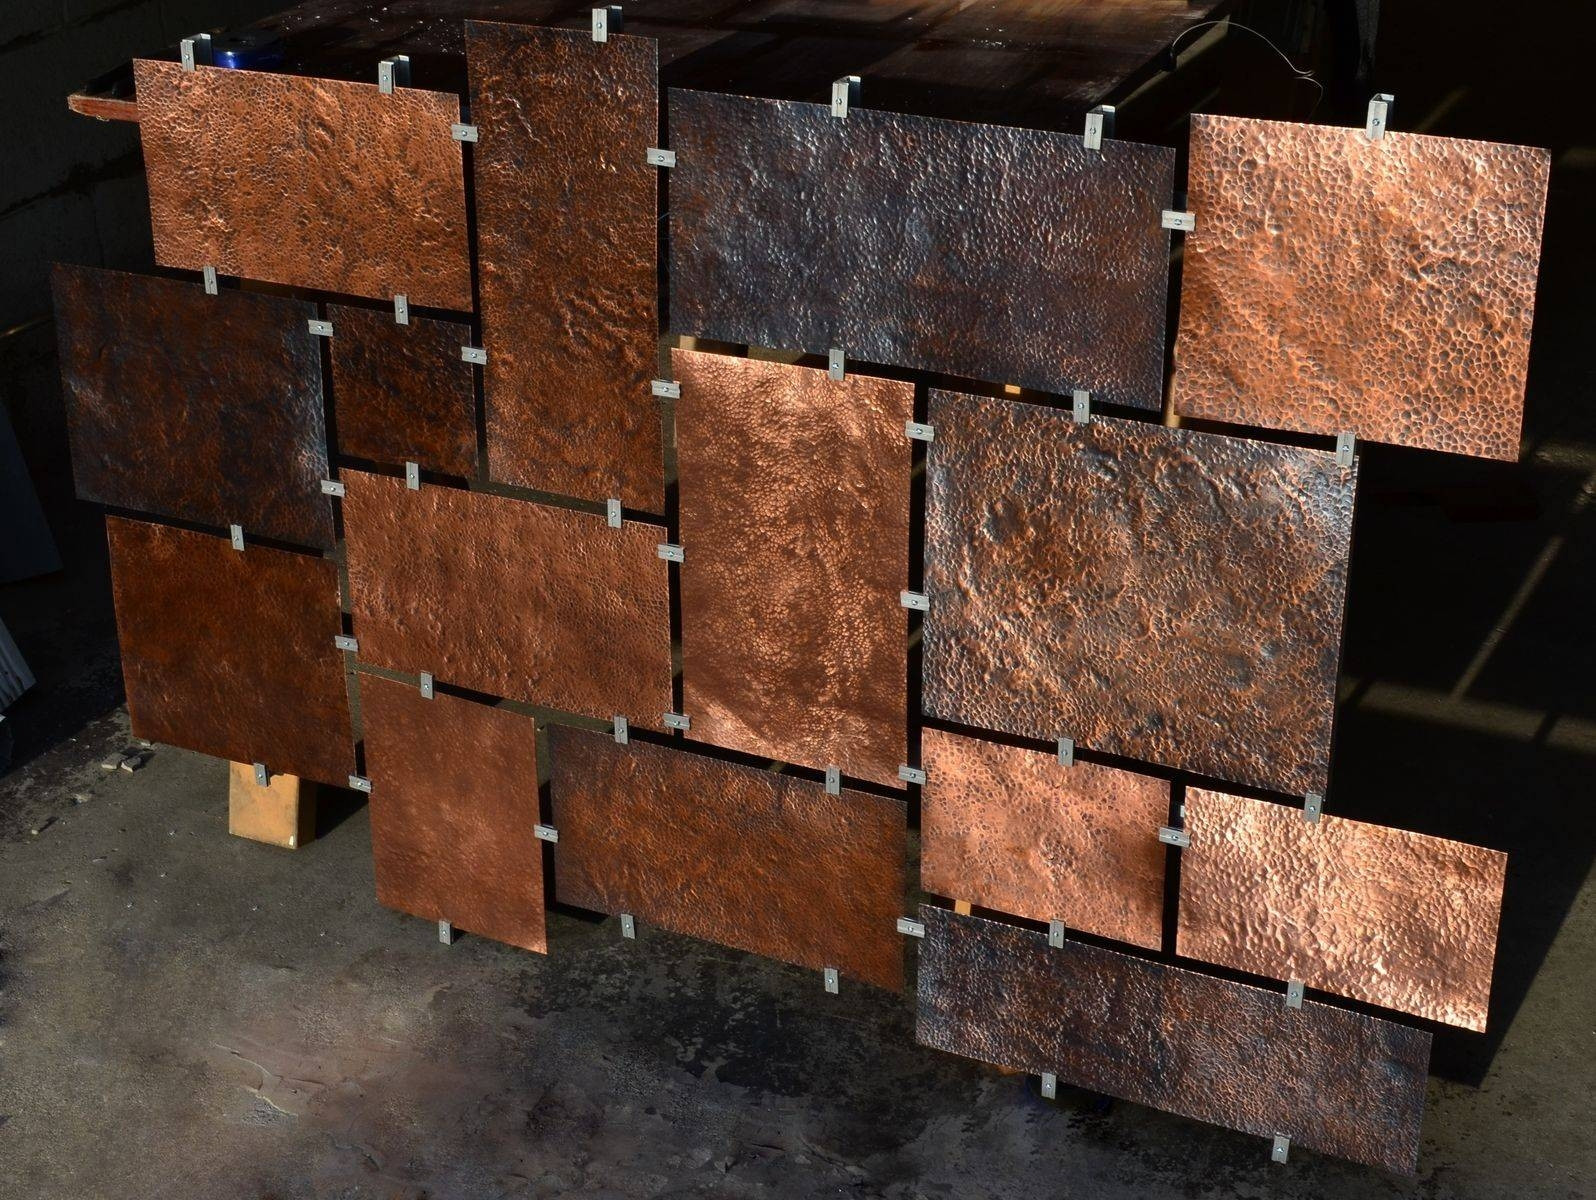 Hand Made Custom Hammered Copper Wall Artfabitecture Regarding Most Current Hammered Metal Wall Art (Gallery 4 of 20)